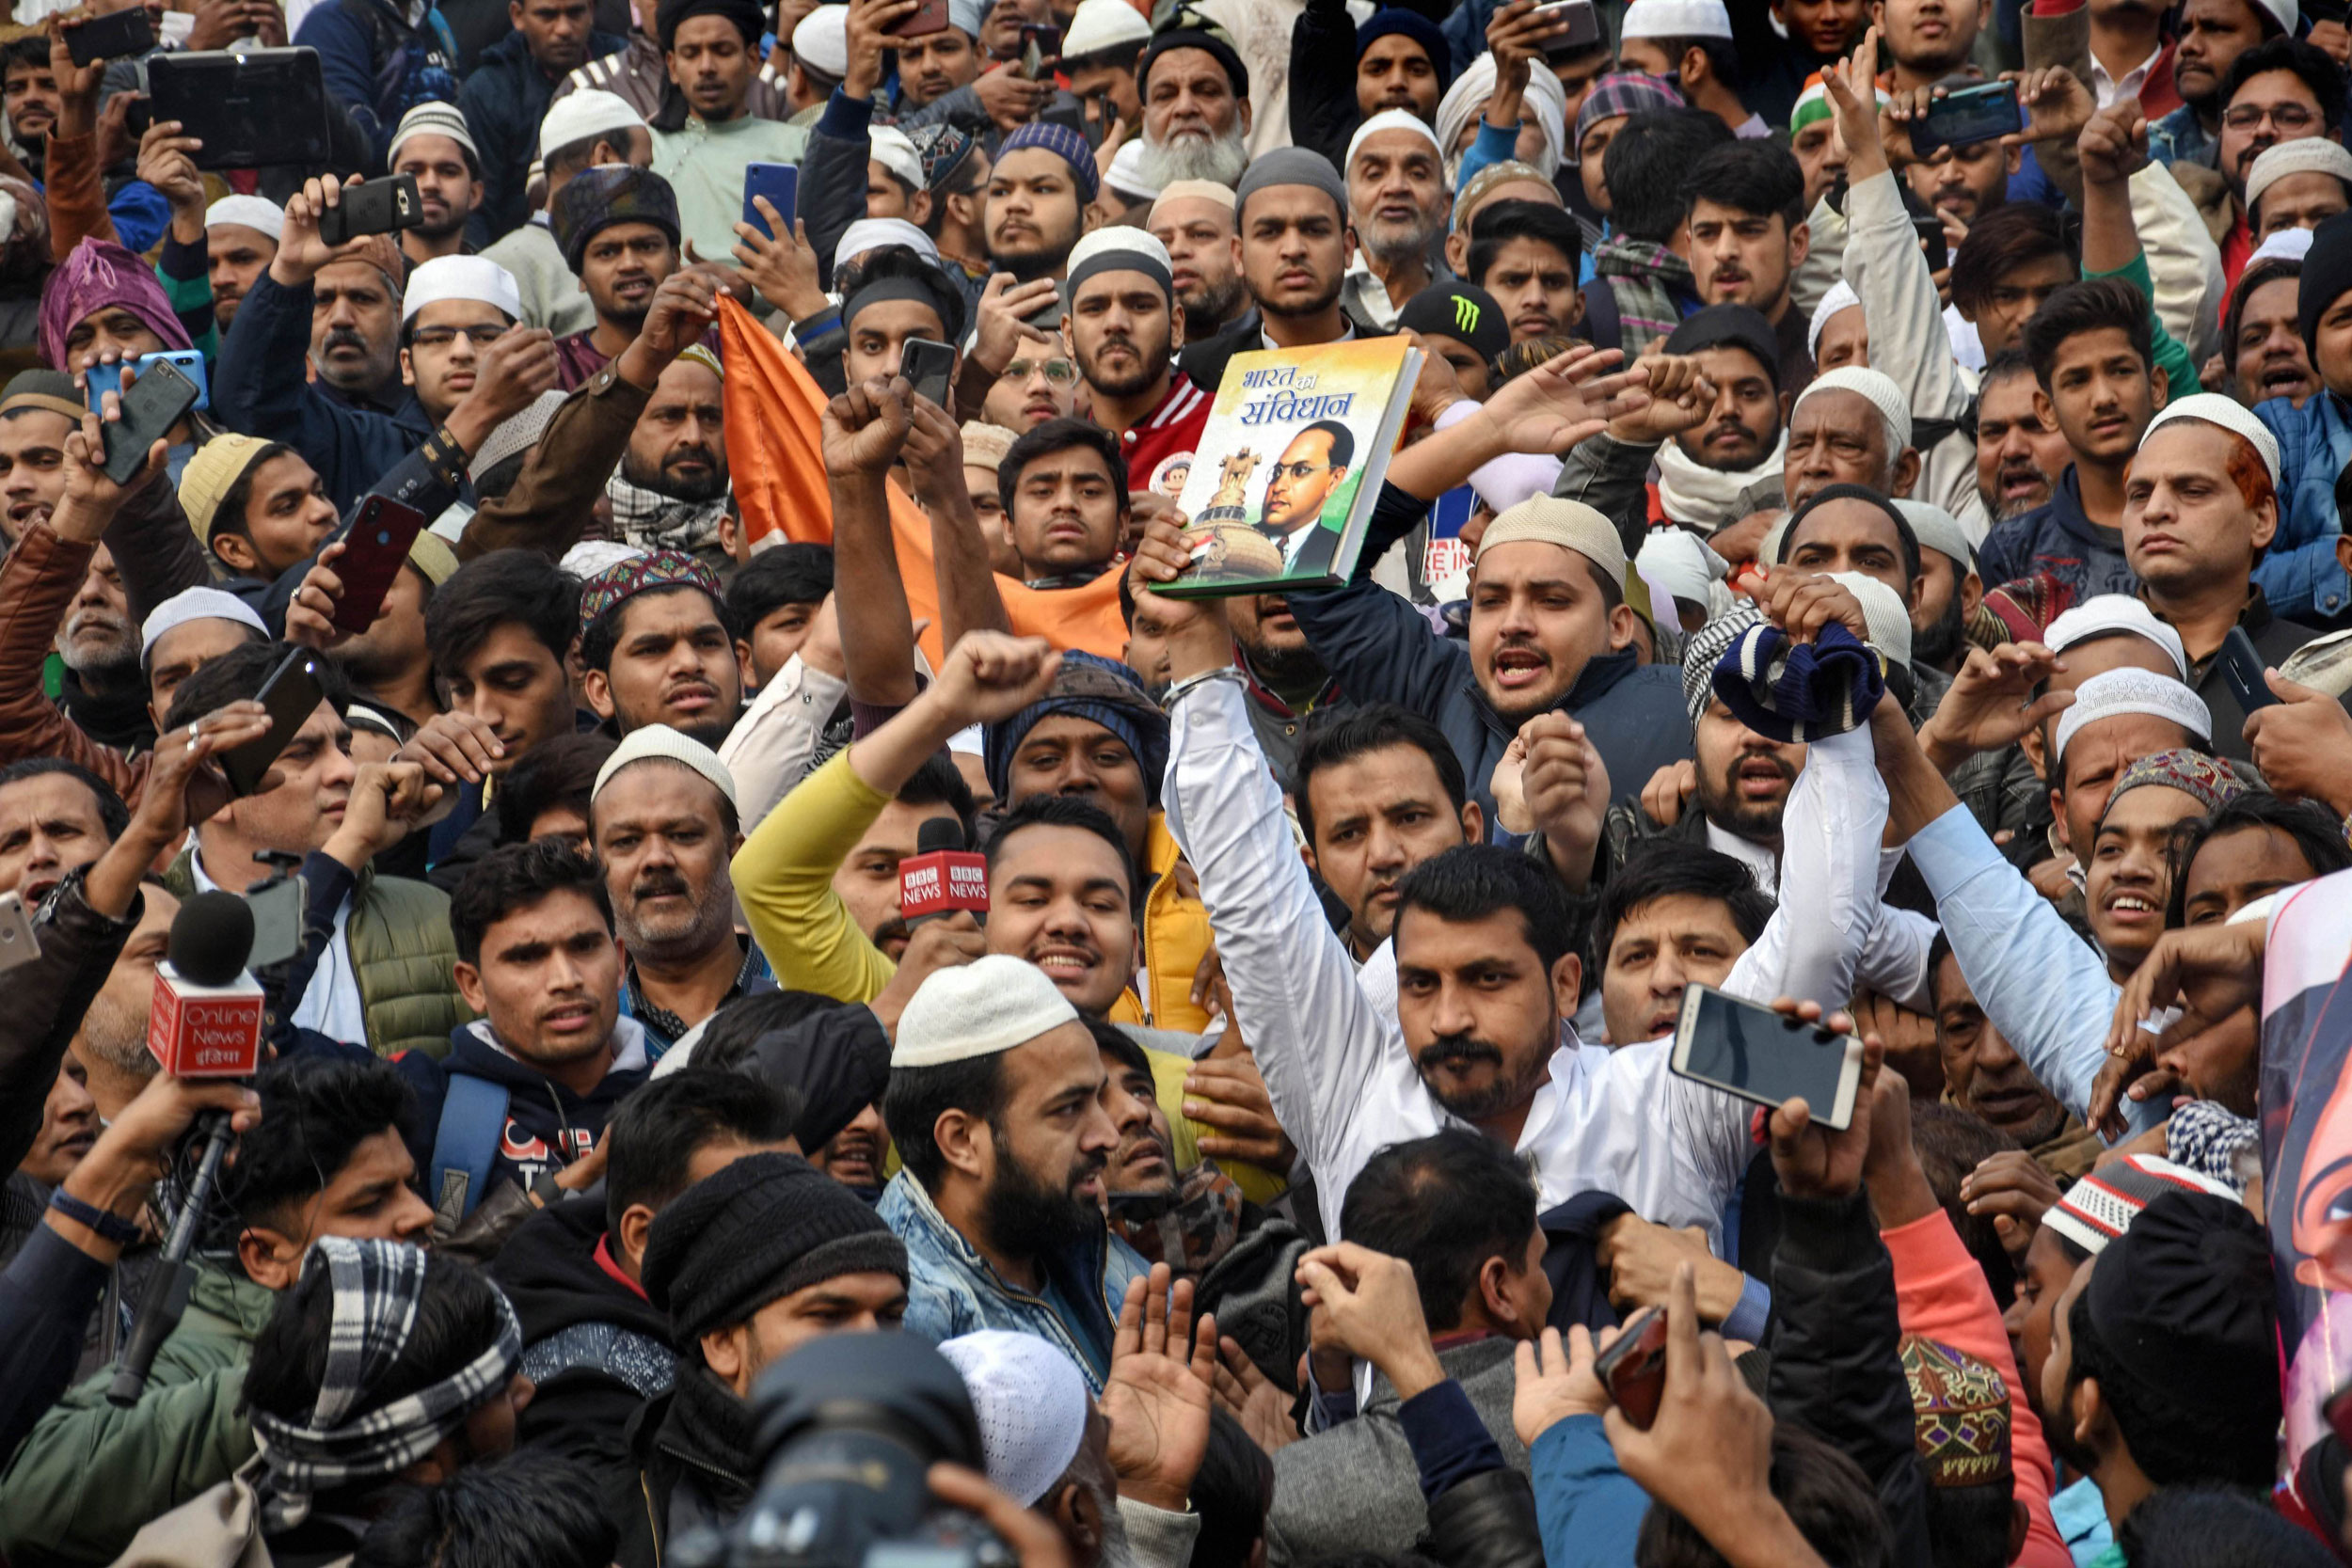 Bhim Army chief Chandrashekhar Azad (in white with both hands raised) along with others protests against the Citizenship (Amendment) Act at Jama Masjid in New Delhi on December 20, 2019.